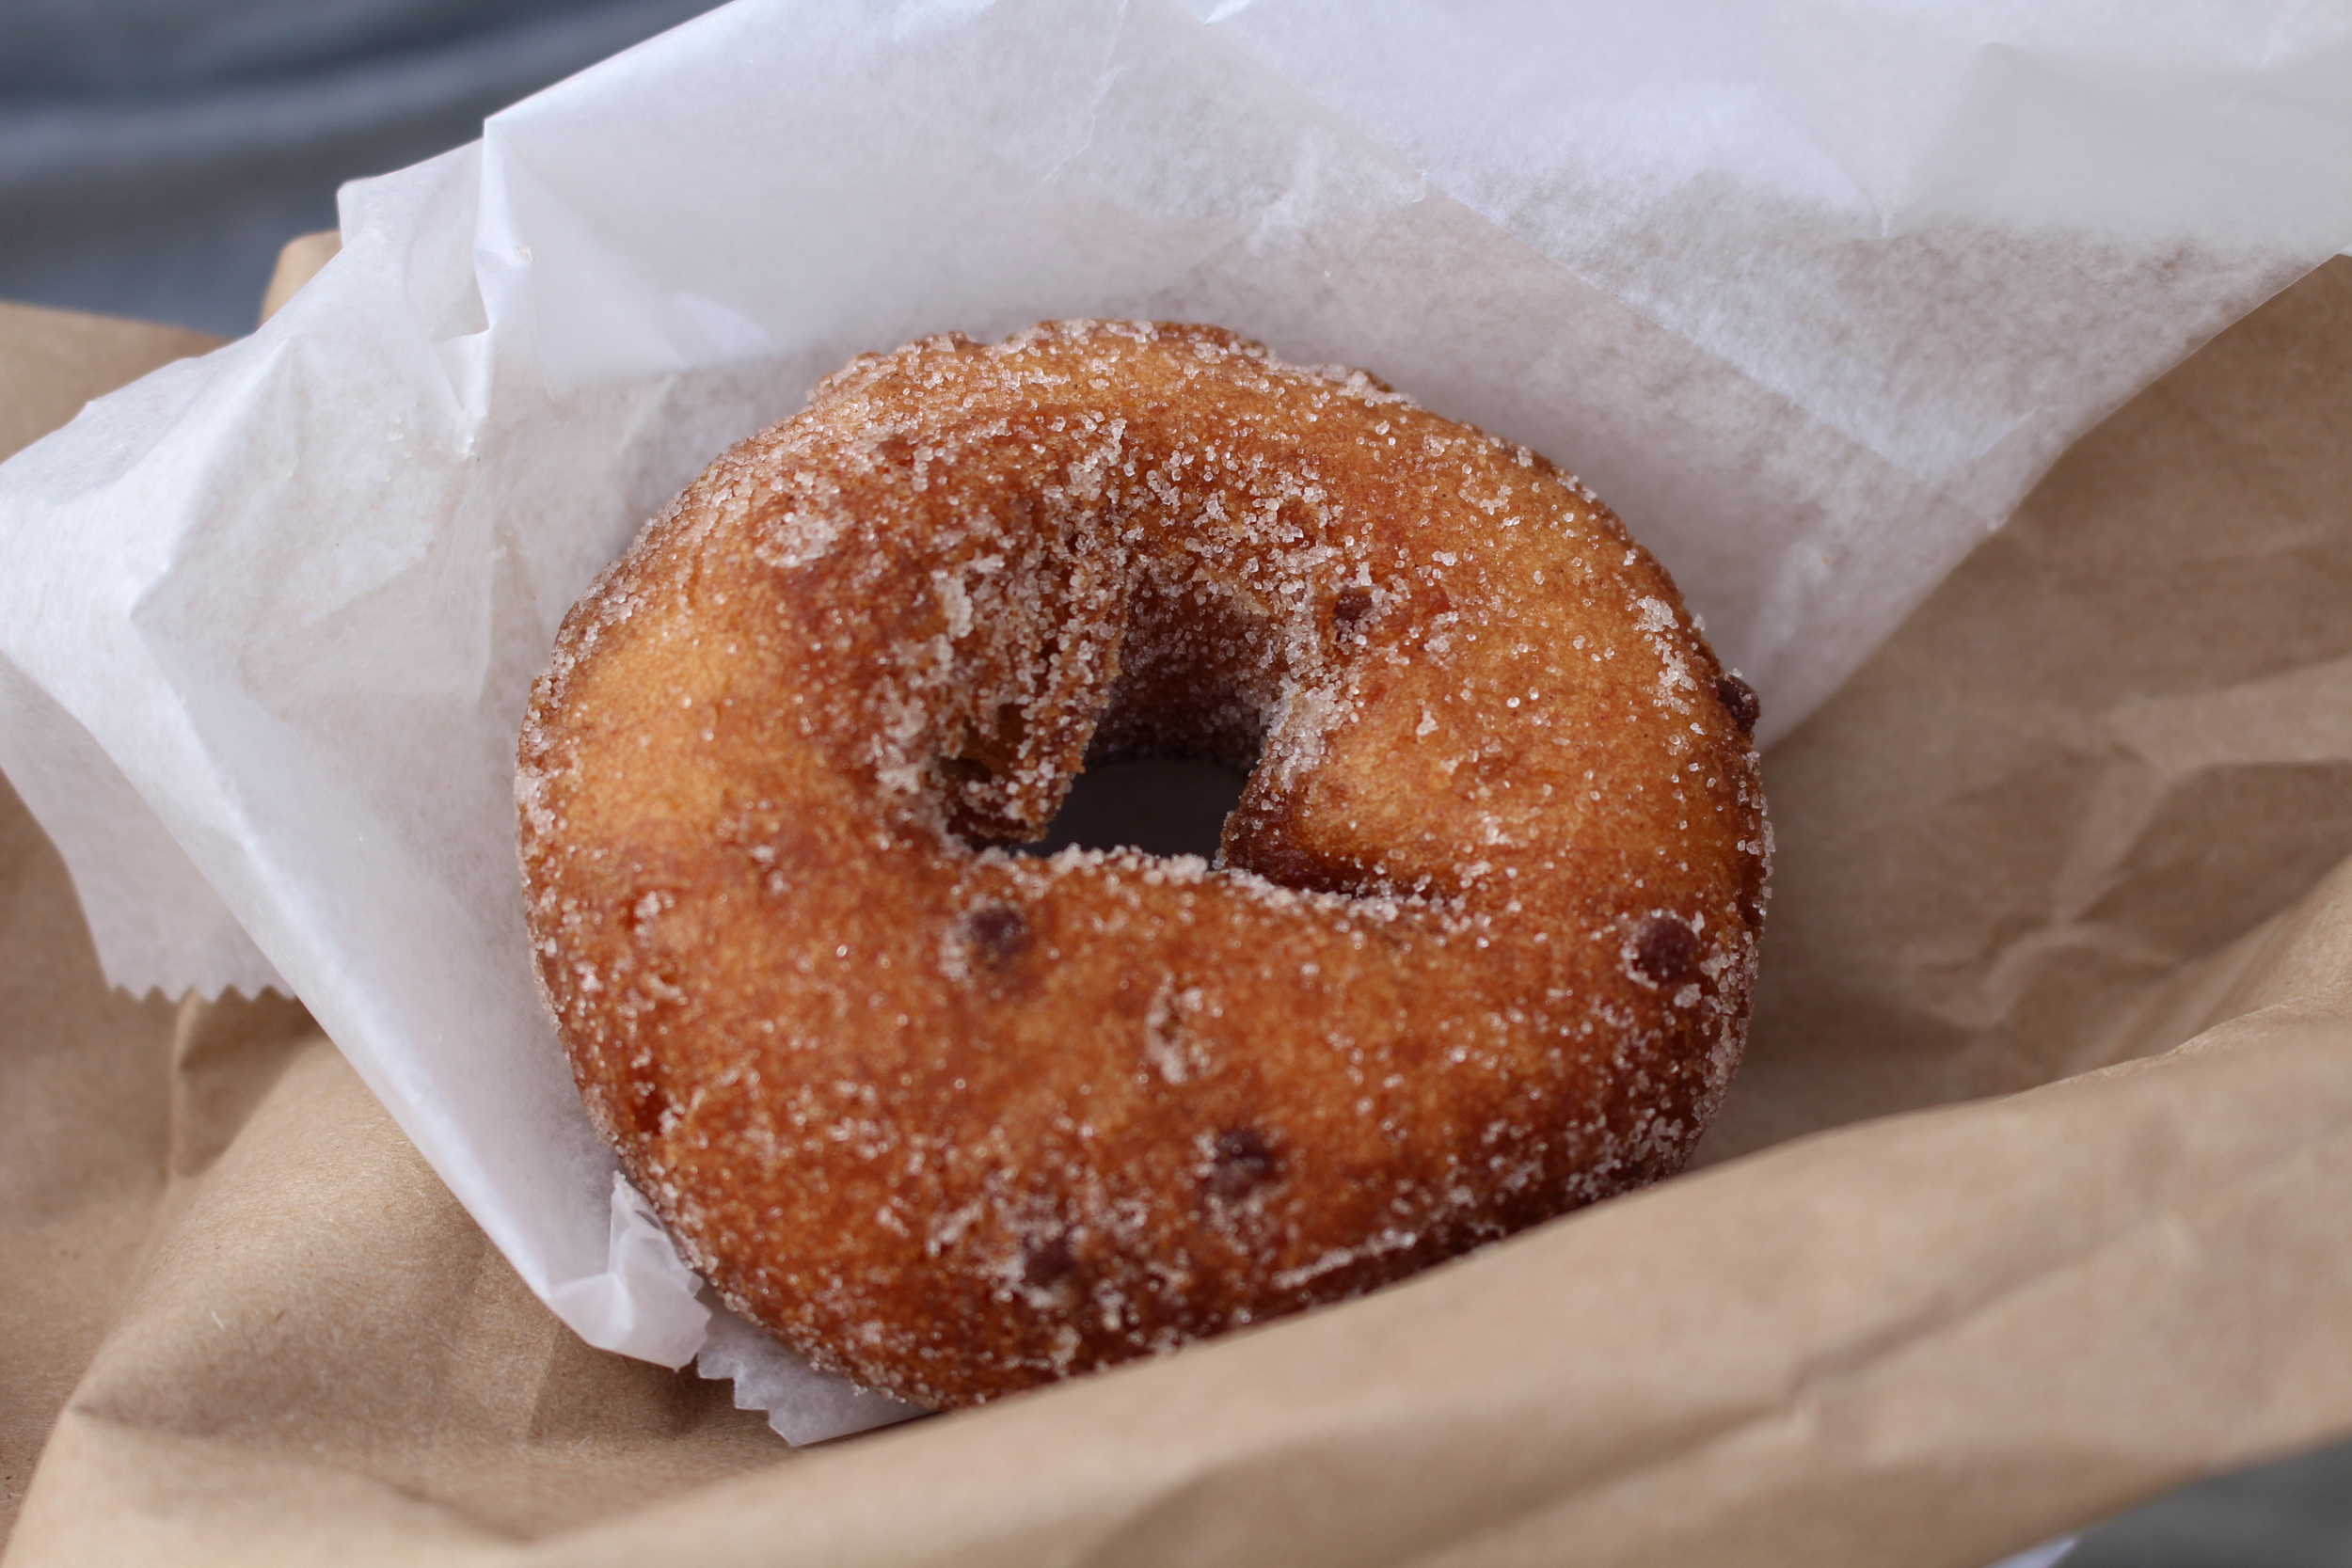 cider donuts at the orchard